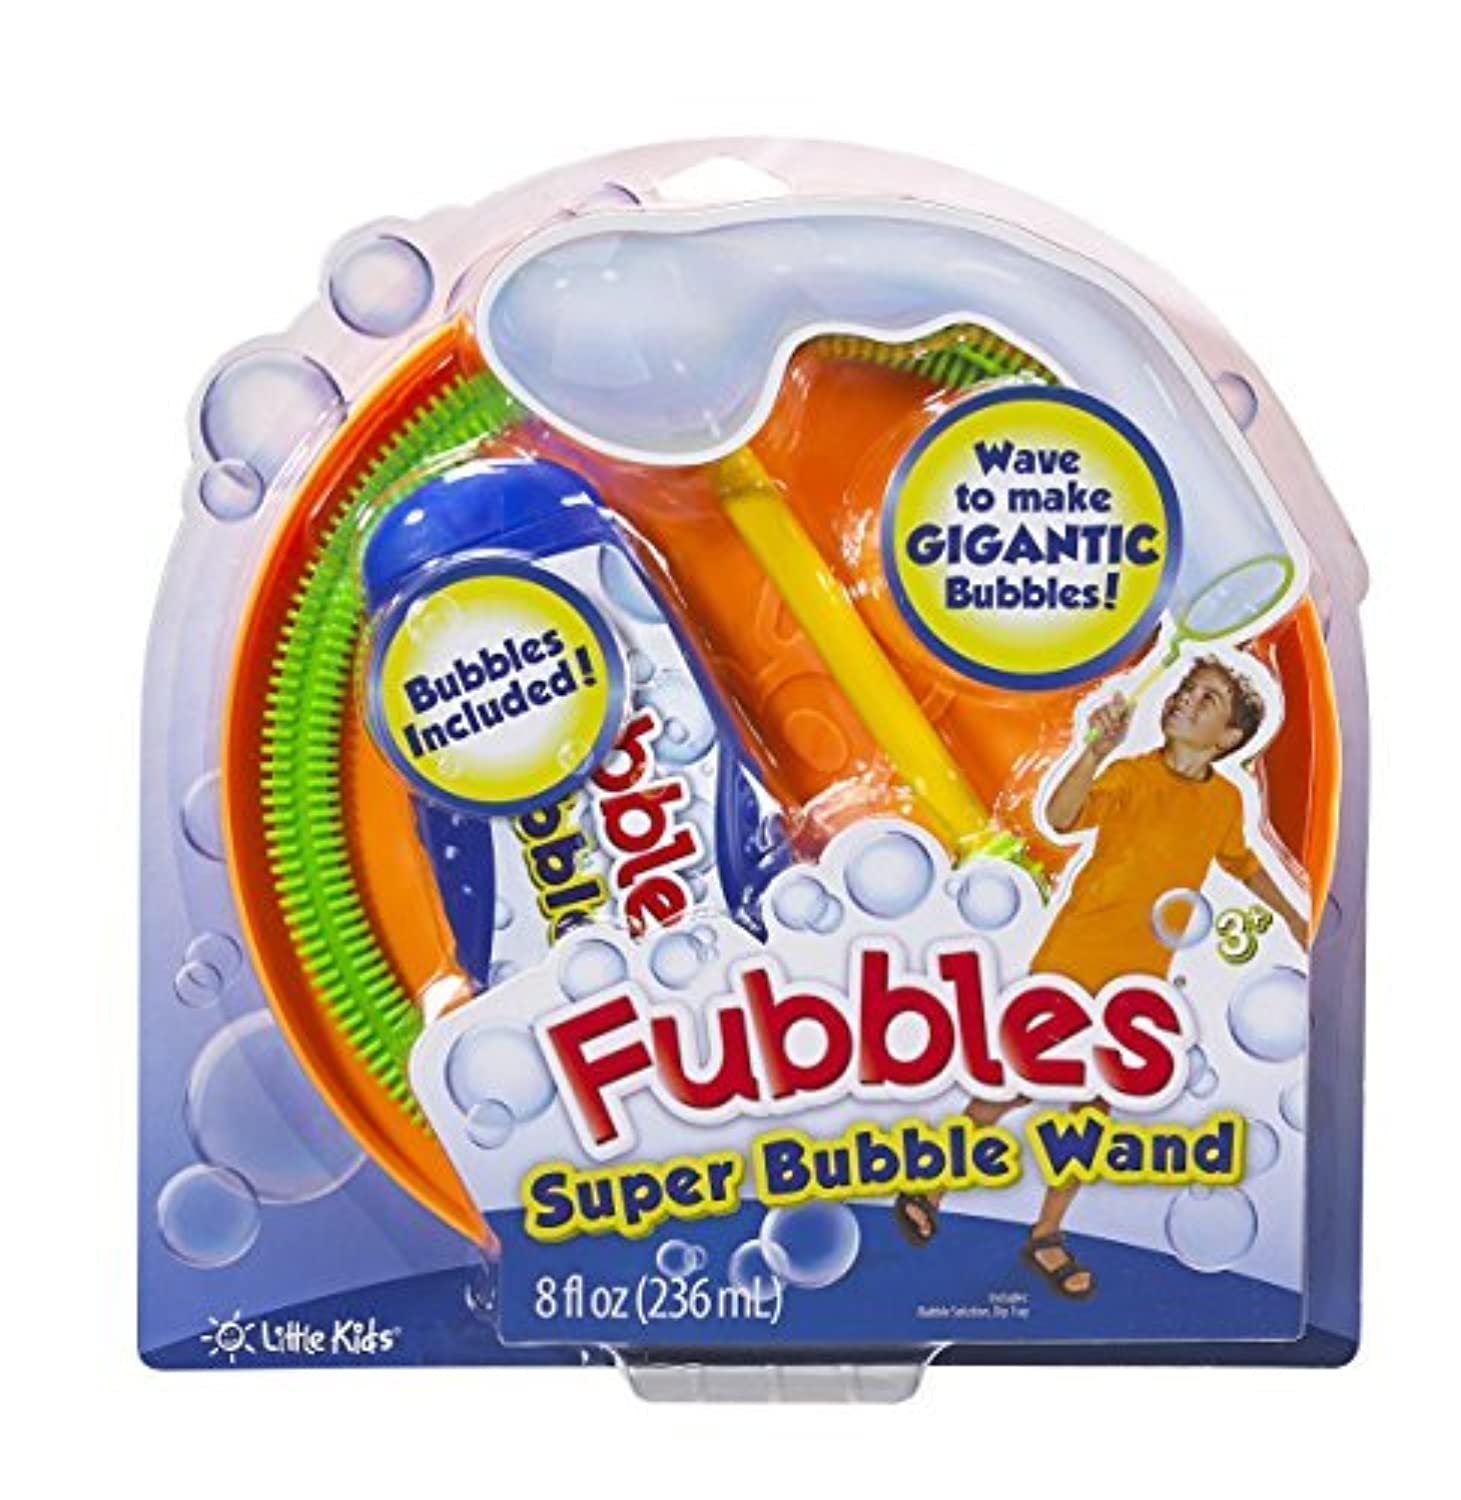 Little Kids Super Fubbles Bubble Wand (Colors May Vary) [並行輸入品]